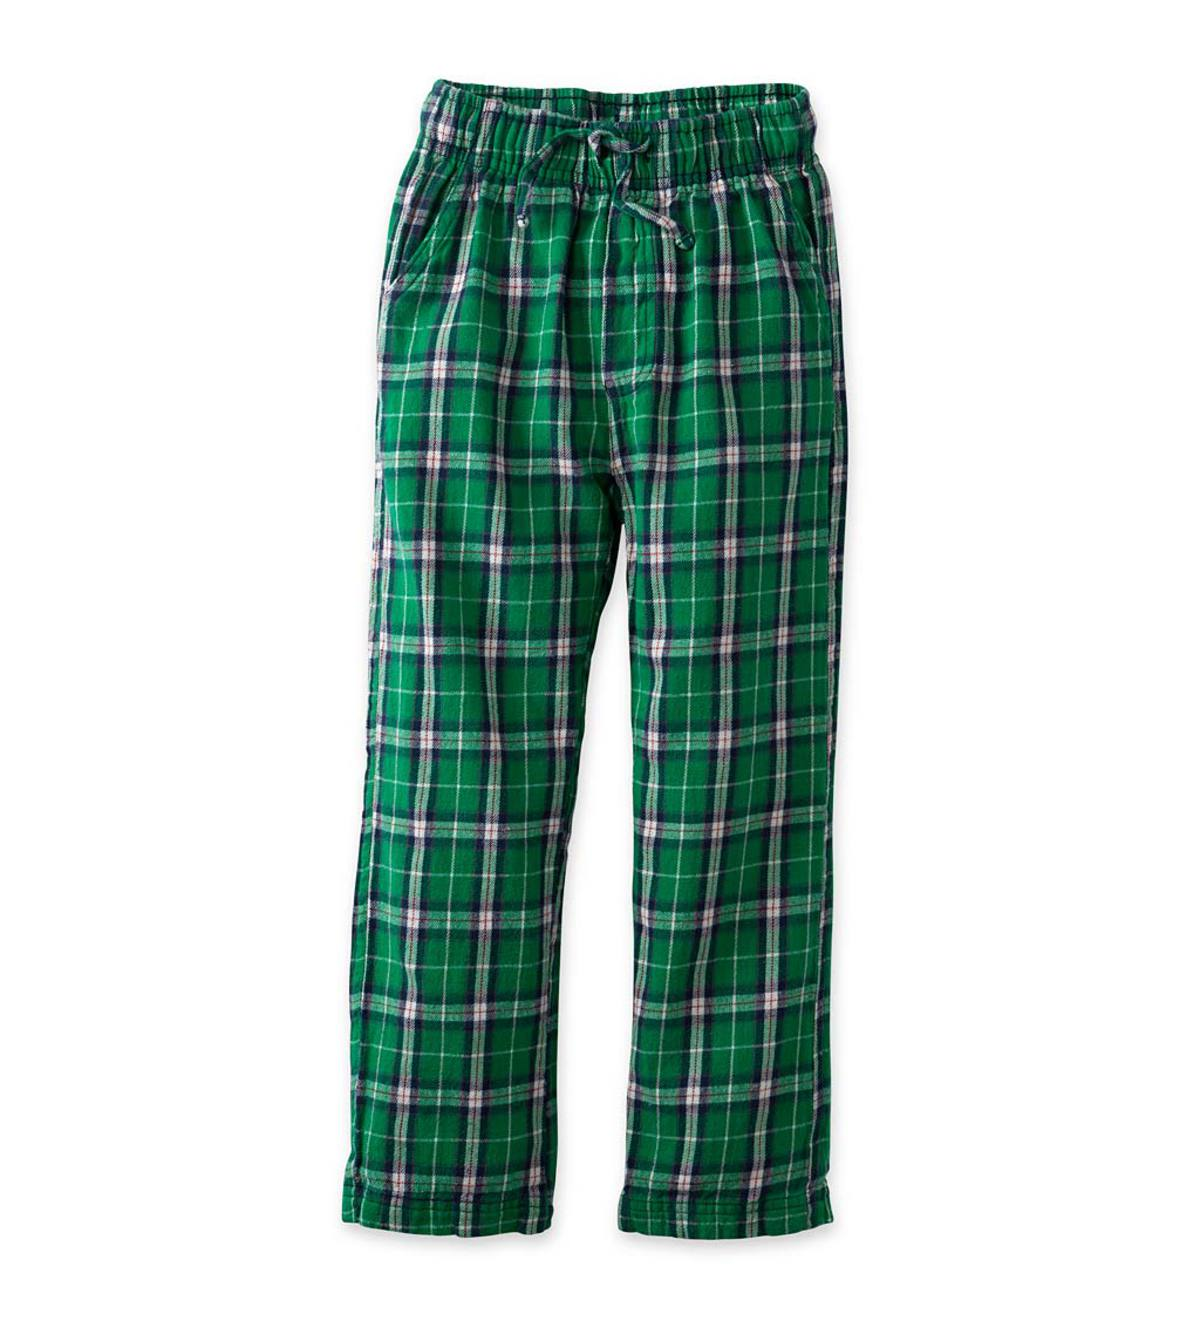 Plaid Pants - Green - 3T